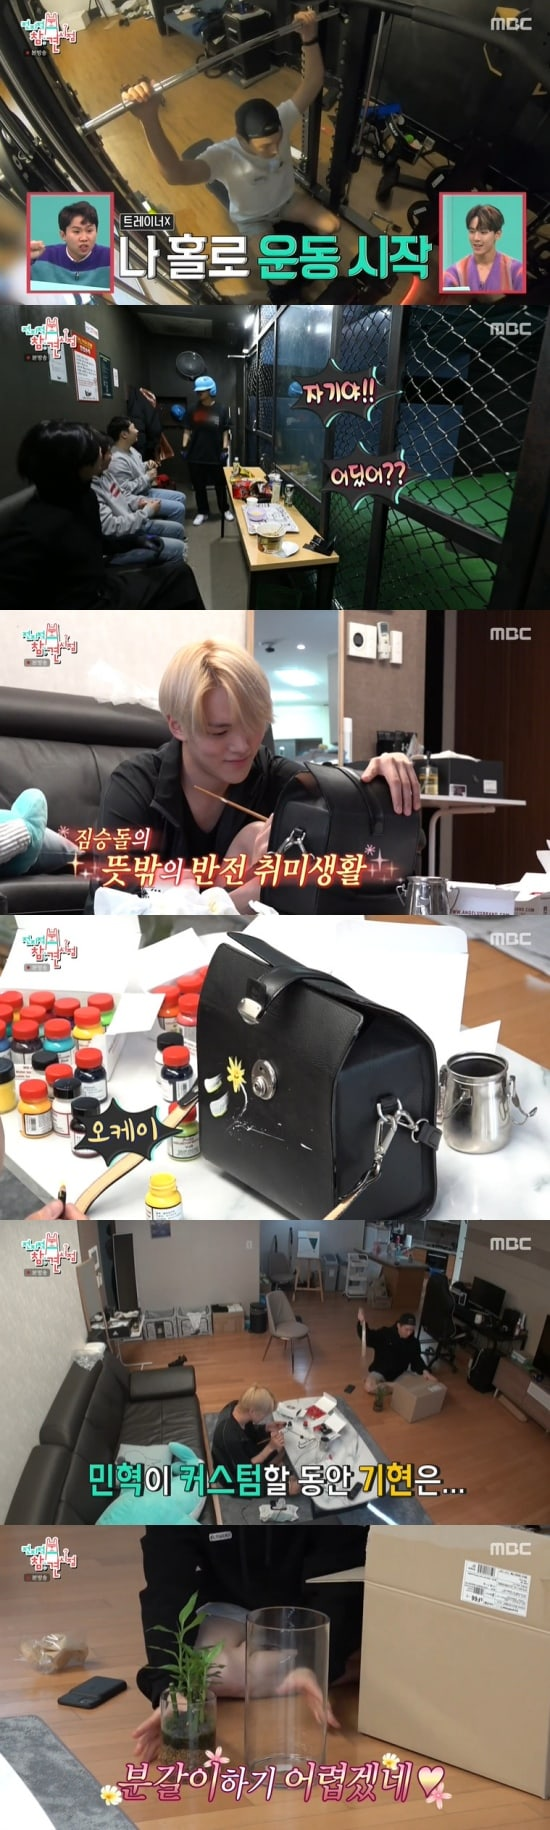 monsta-x-the-manager-4